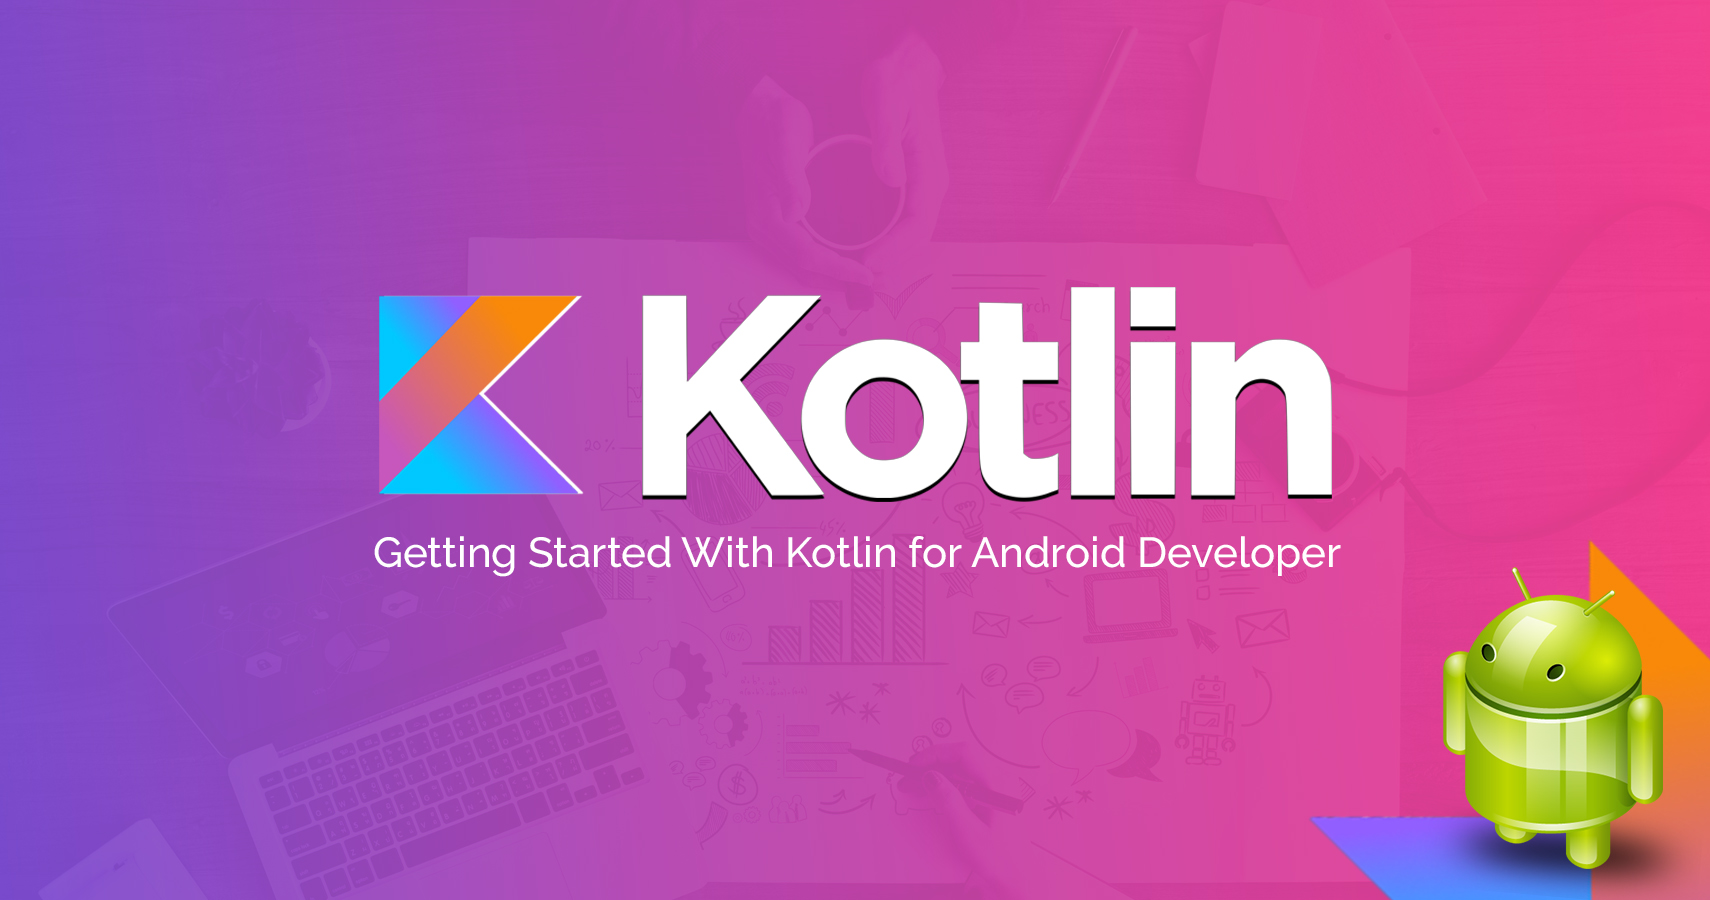 Getting Started With Kotlin for Android Development